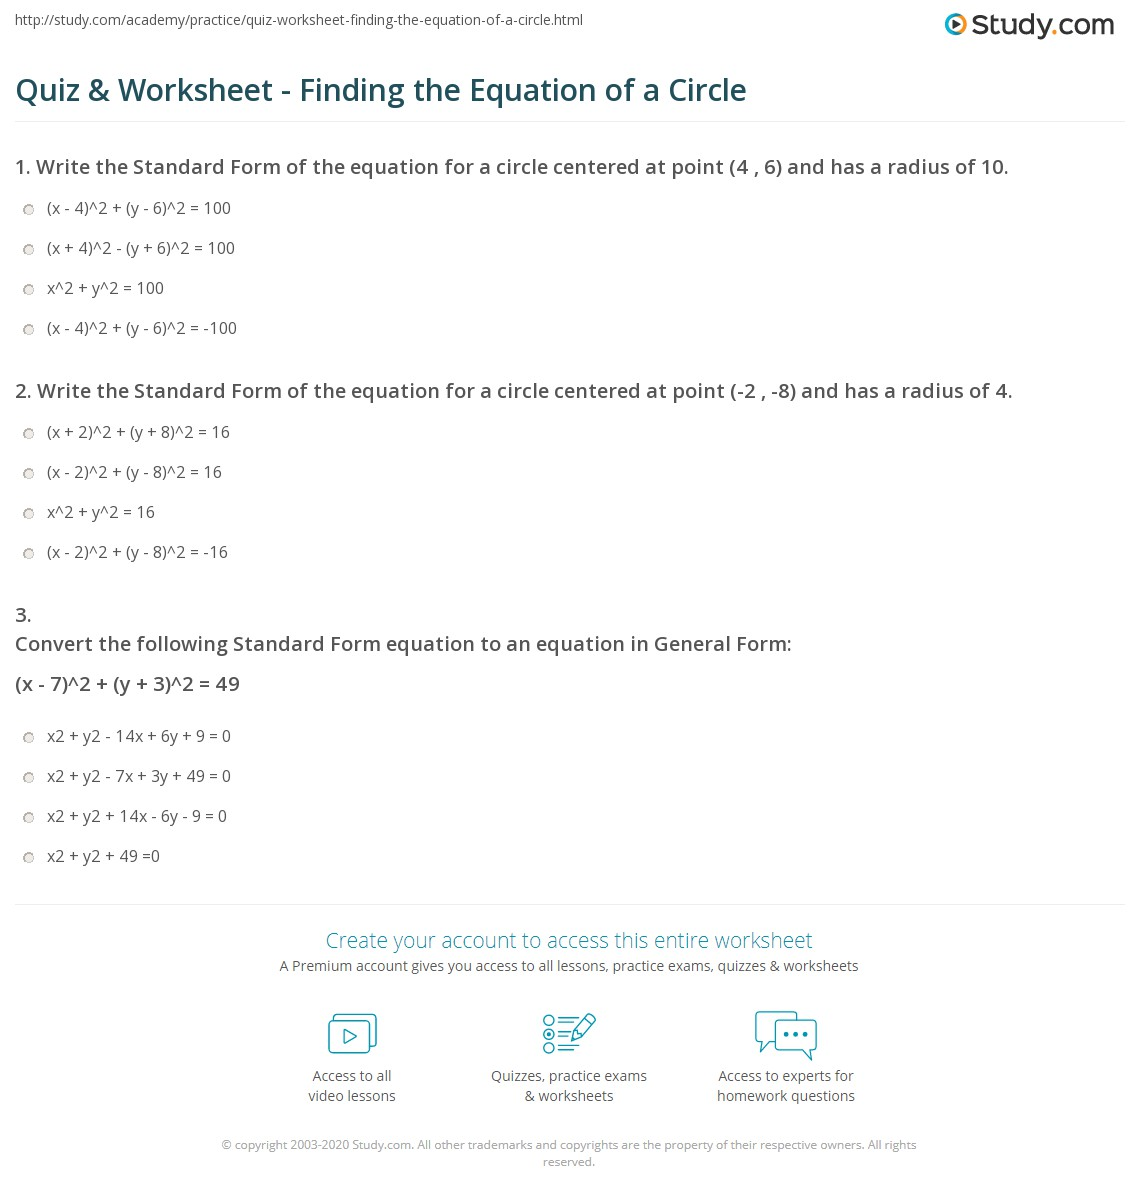 Worksheets Equations Of Circles Worksheet quiz worksheet finding the equation of a circle study com print how to find worksheet